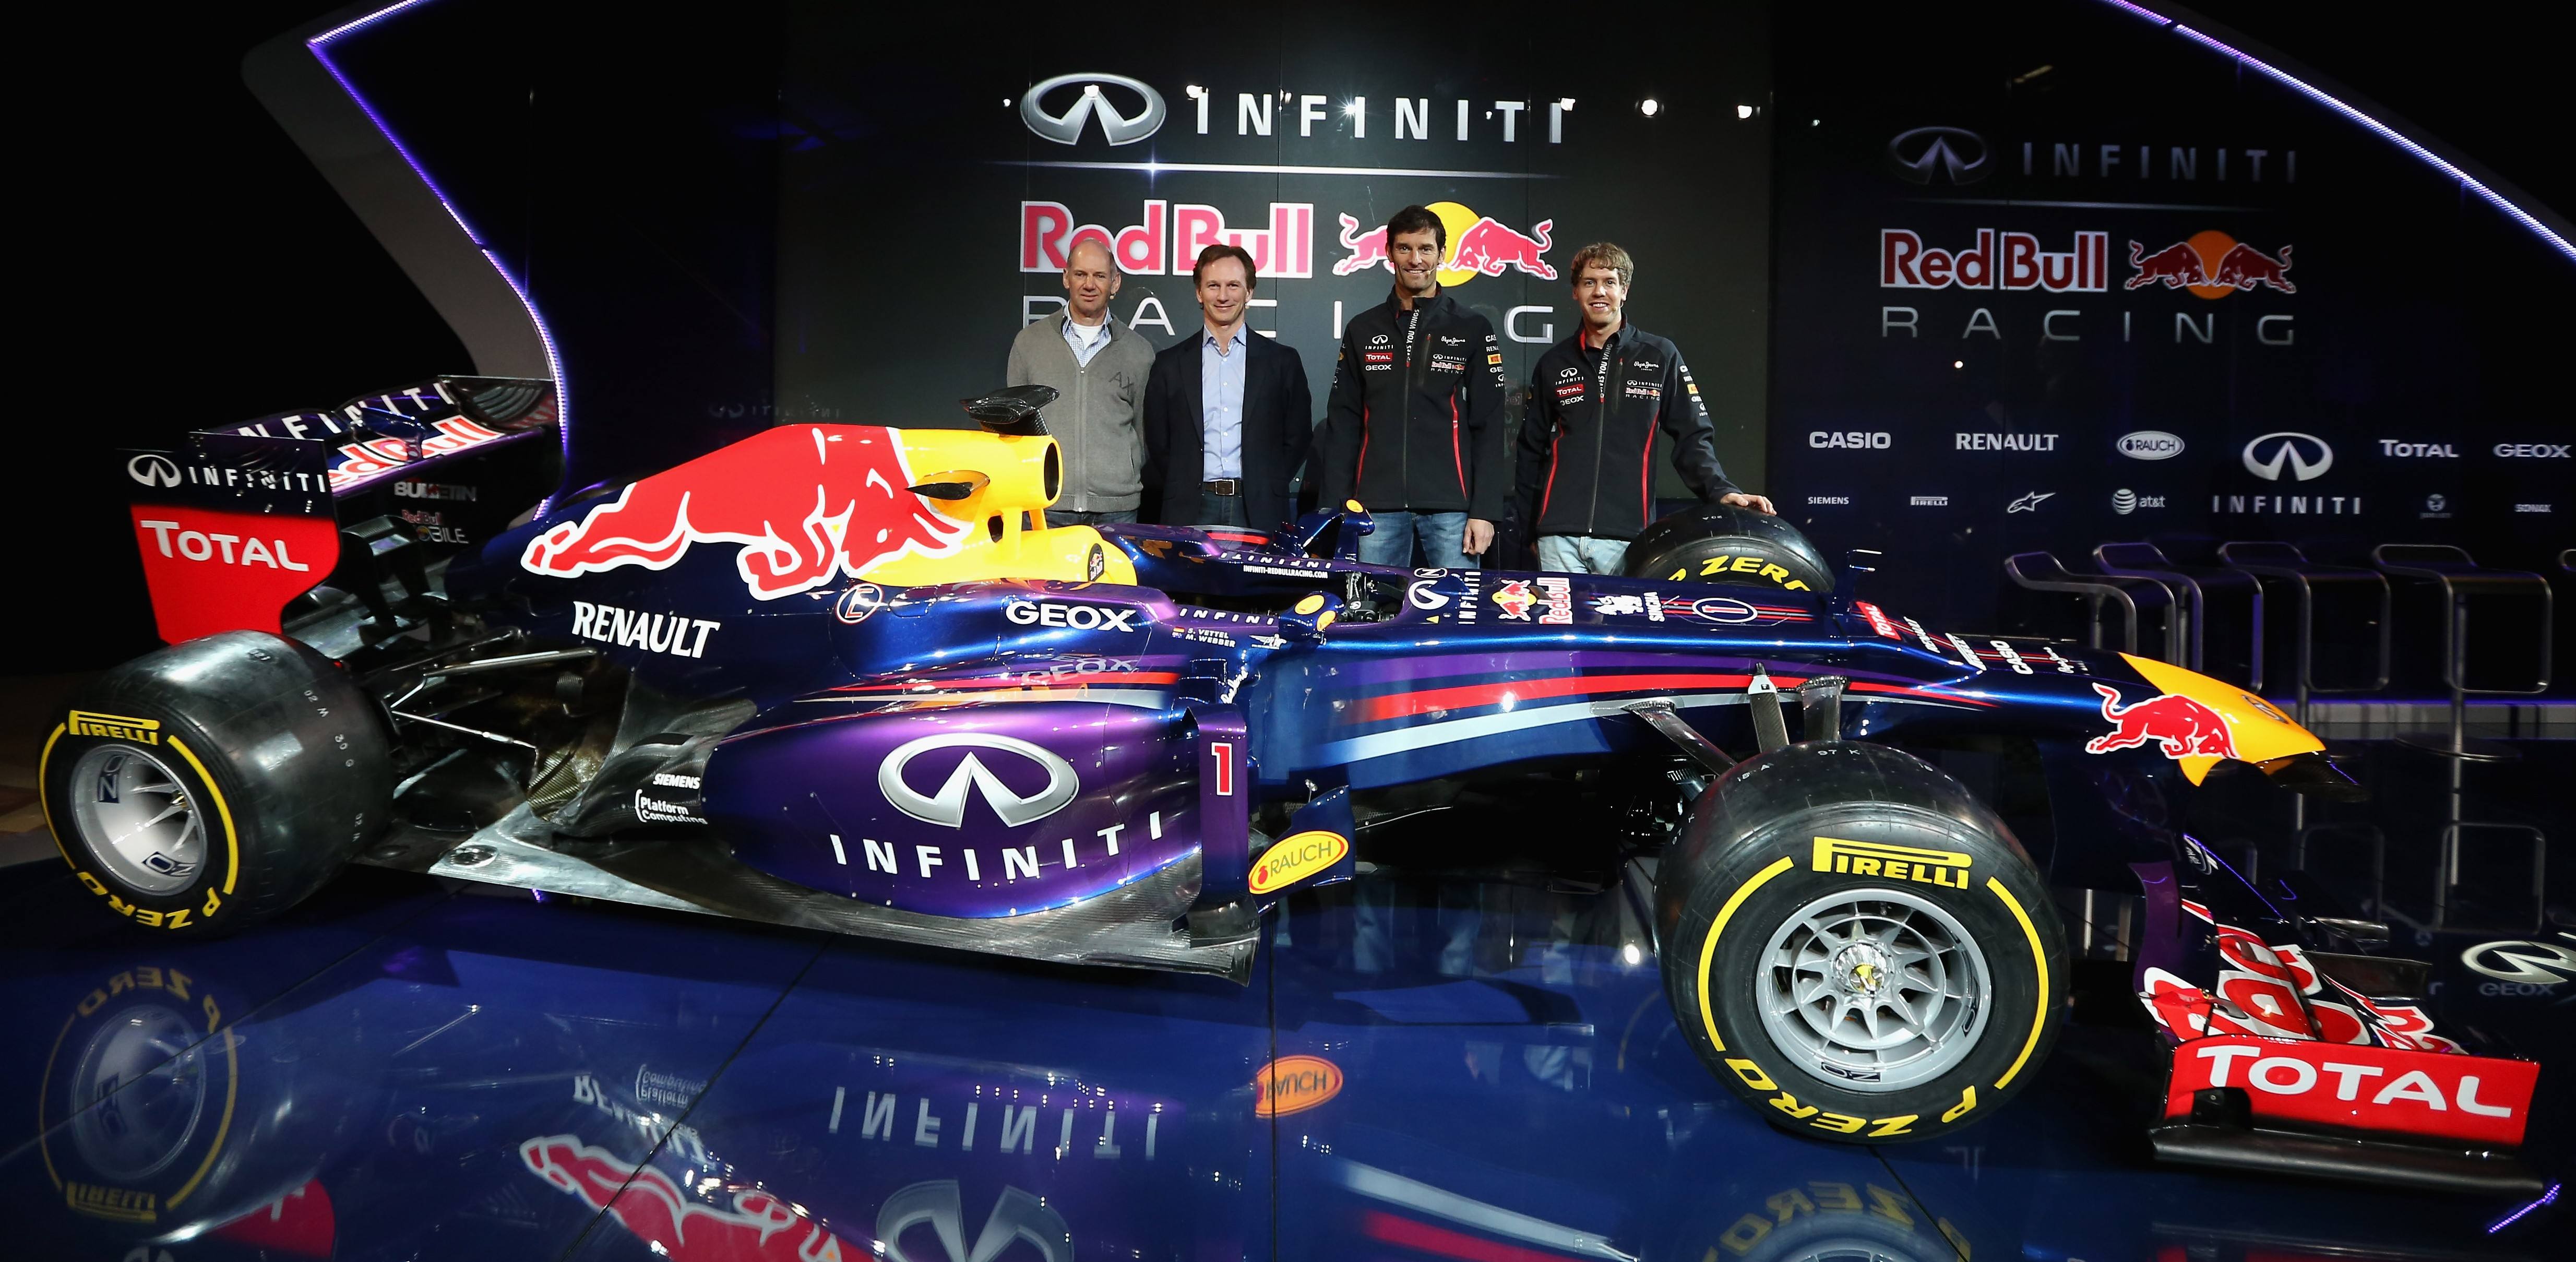 during the Infiniti Red Bull Racing RB9 launch on February 3, 2013 in Milton Keyenes, England.